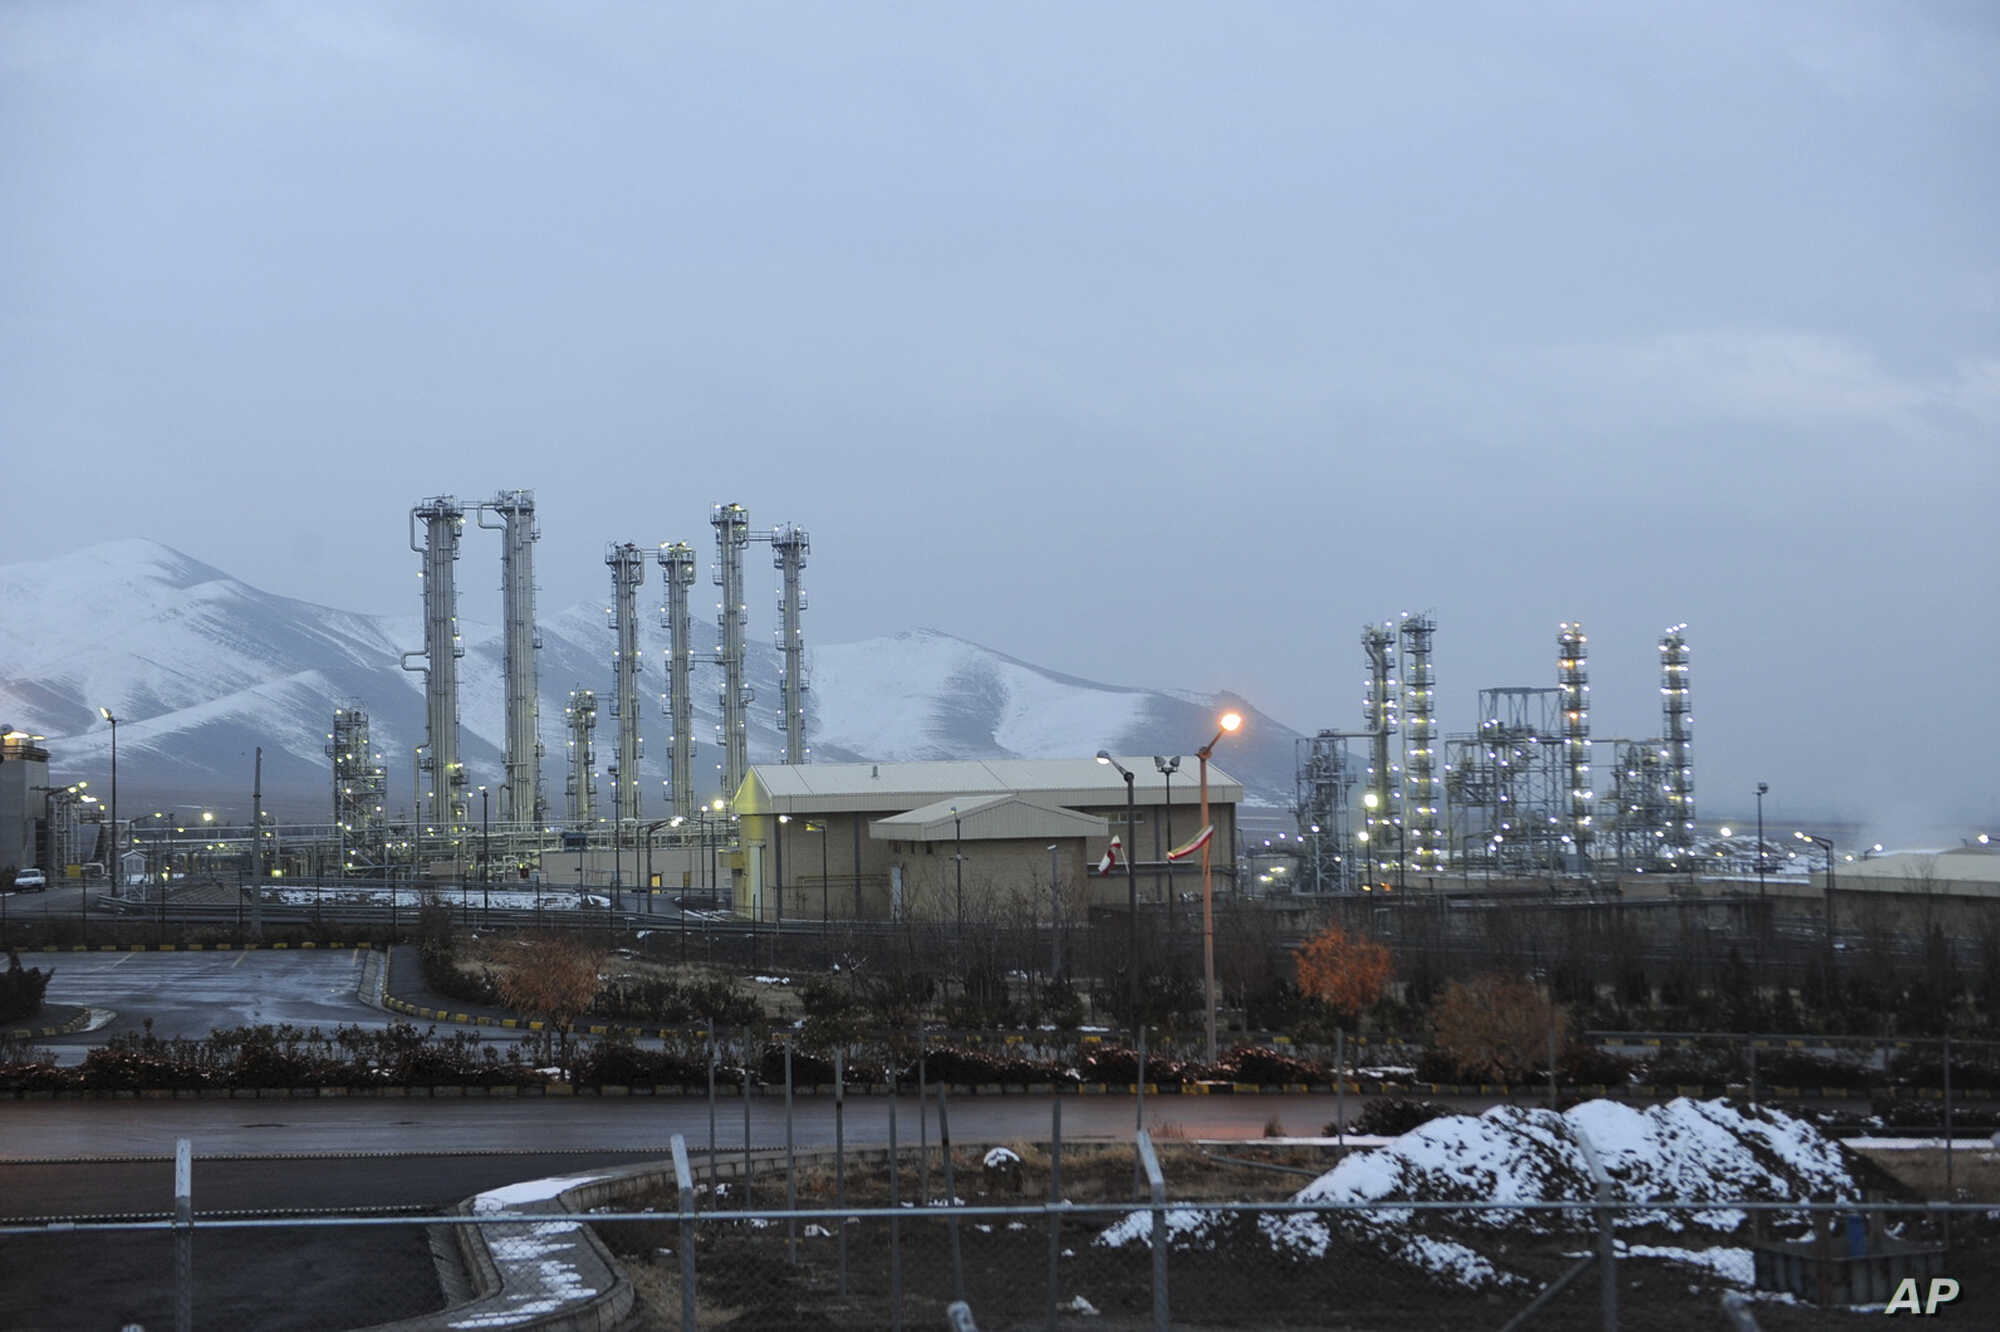 FILE - Iran's heavy water nuclear facility is backdropped by mountains near the central city of Arak, Iran. Iran and world powers are negotiating the terms of a permanent deal over its contested nuclear program.